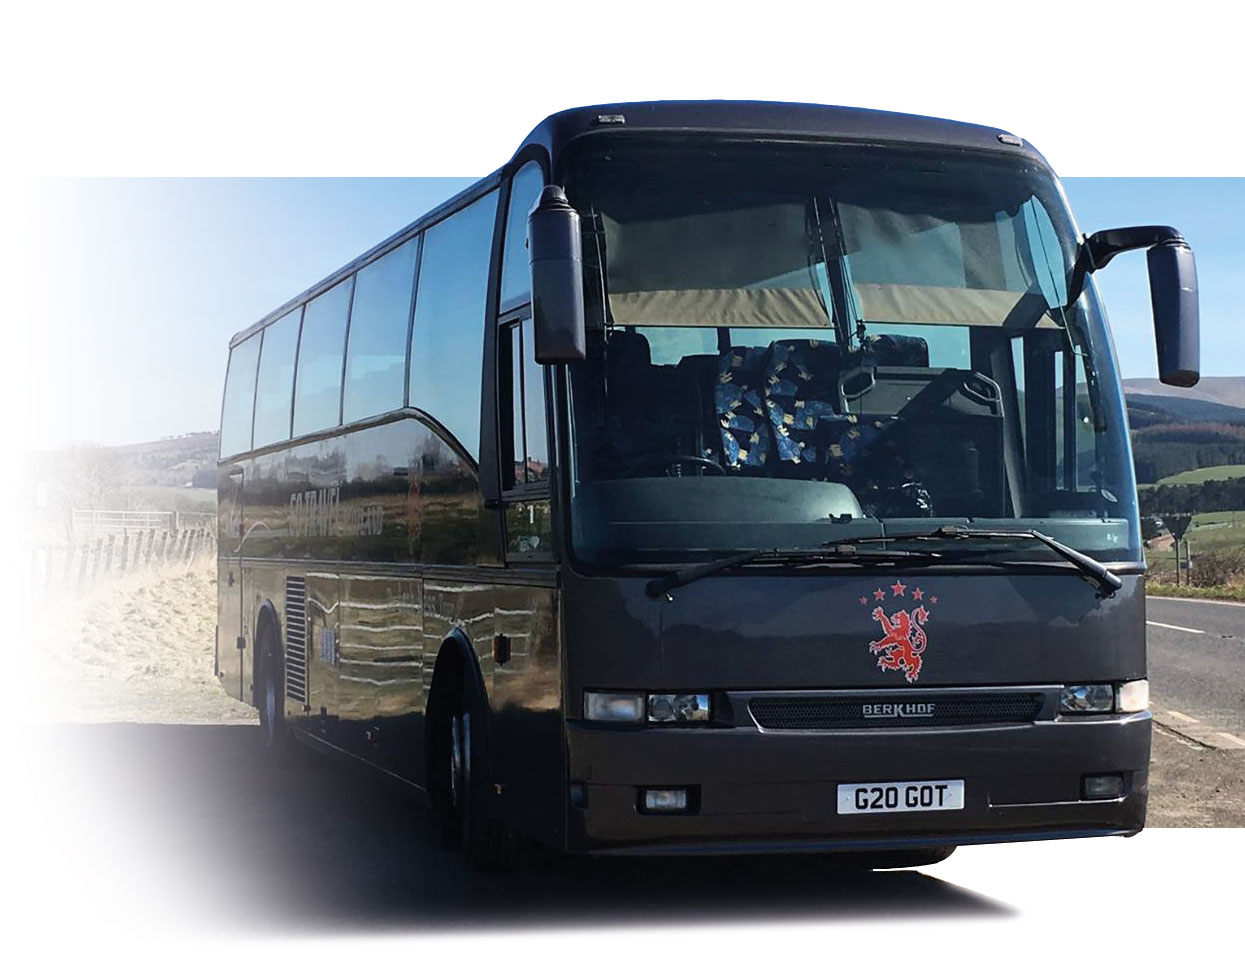 Luxury Coach Hire Carluke - Go Travel Scotland